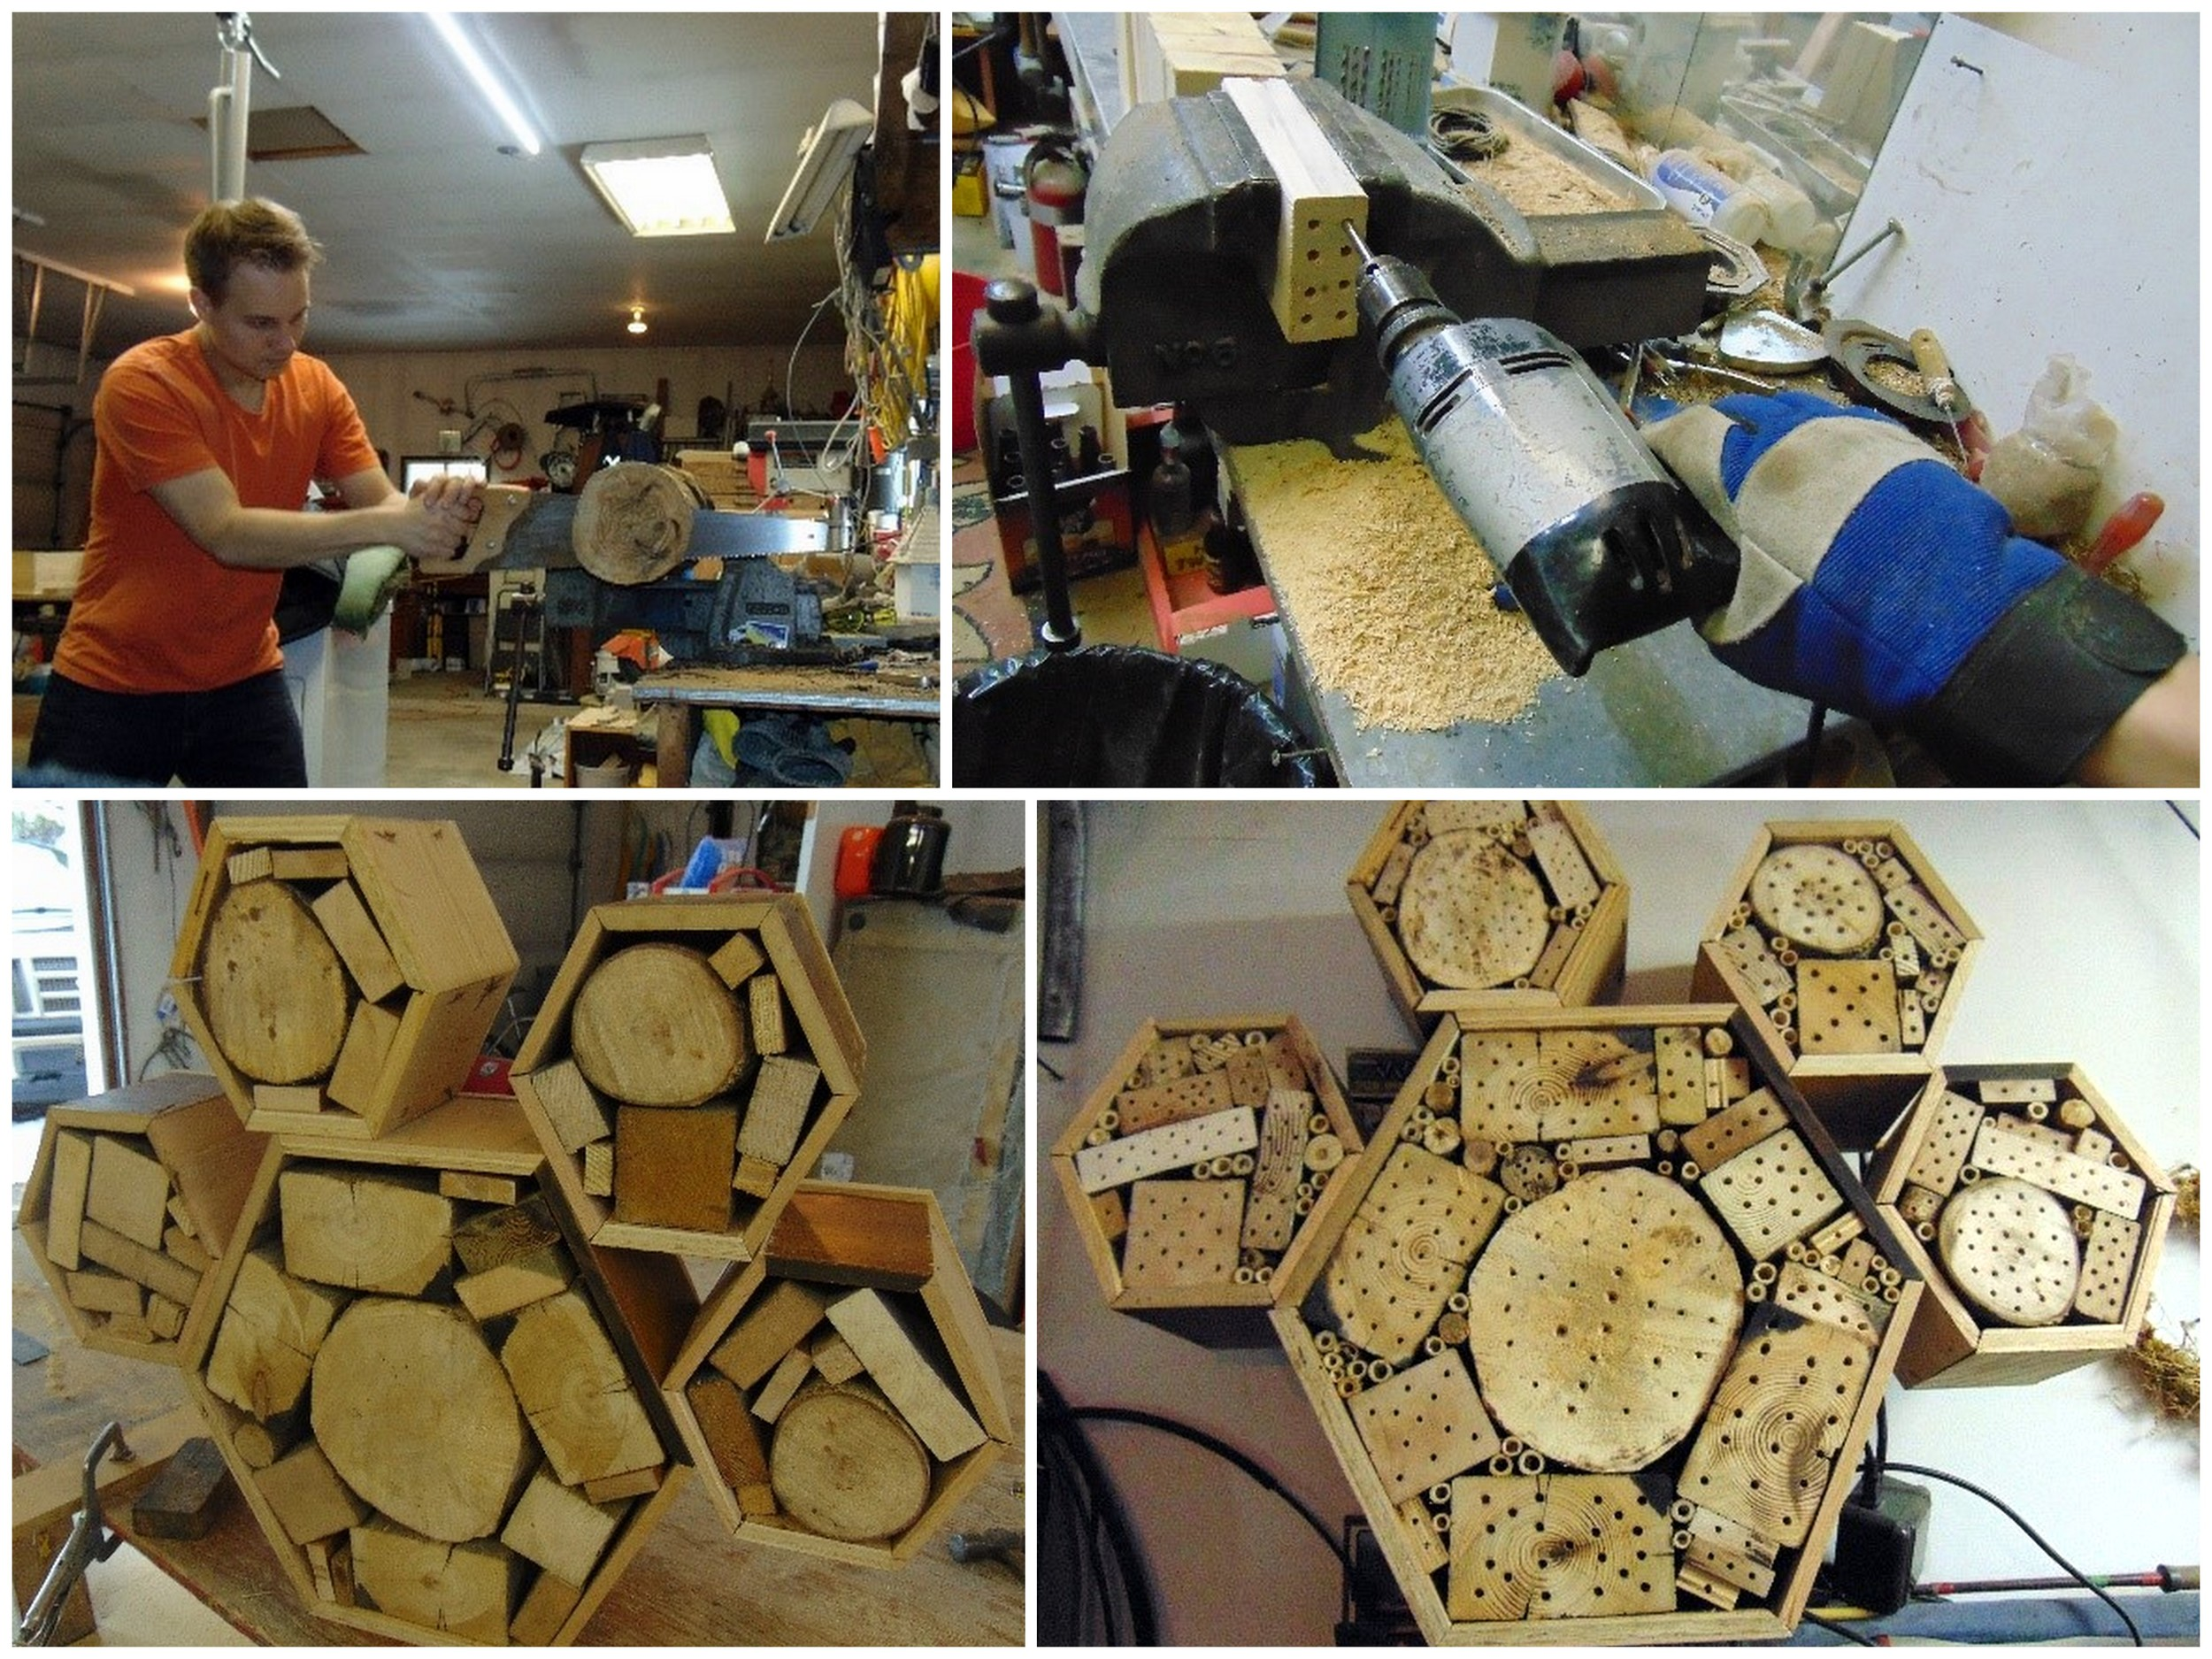 Cutting logs and blocks to size and drilling a variety of holes in each block for the bee nests.